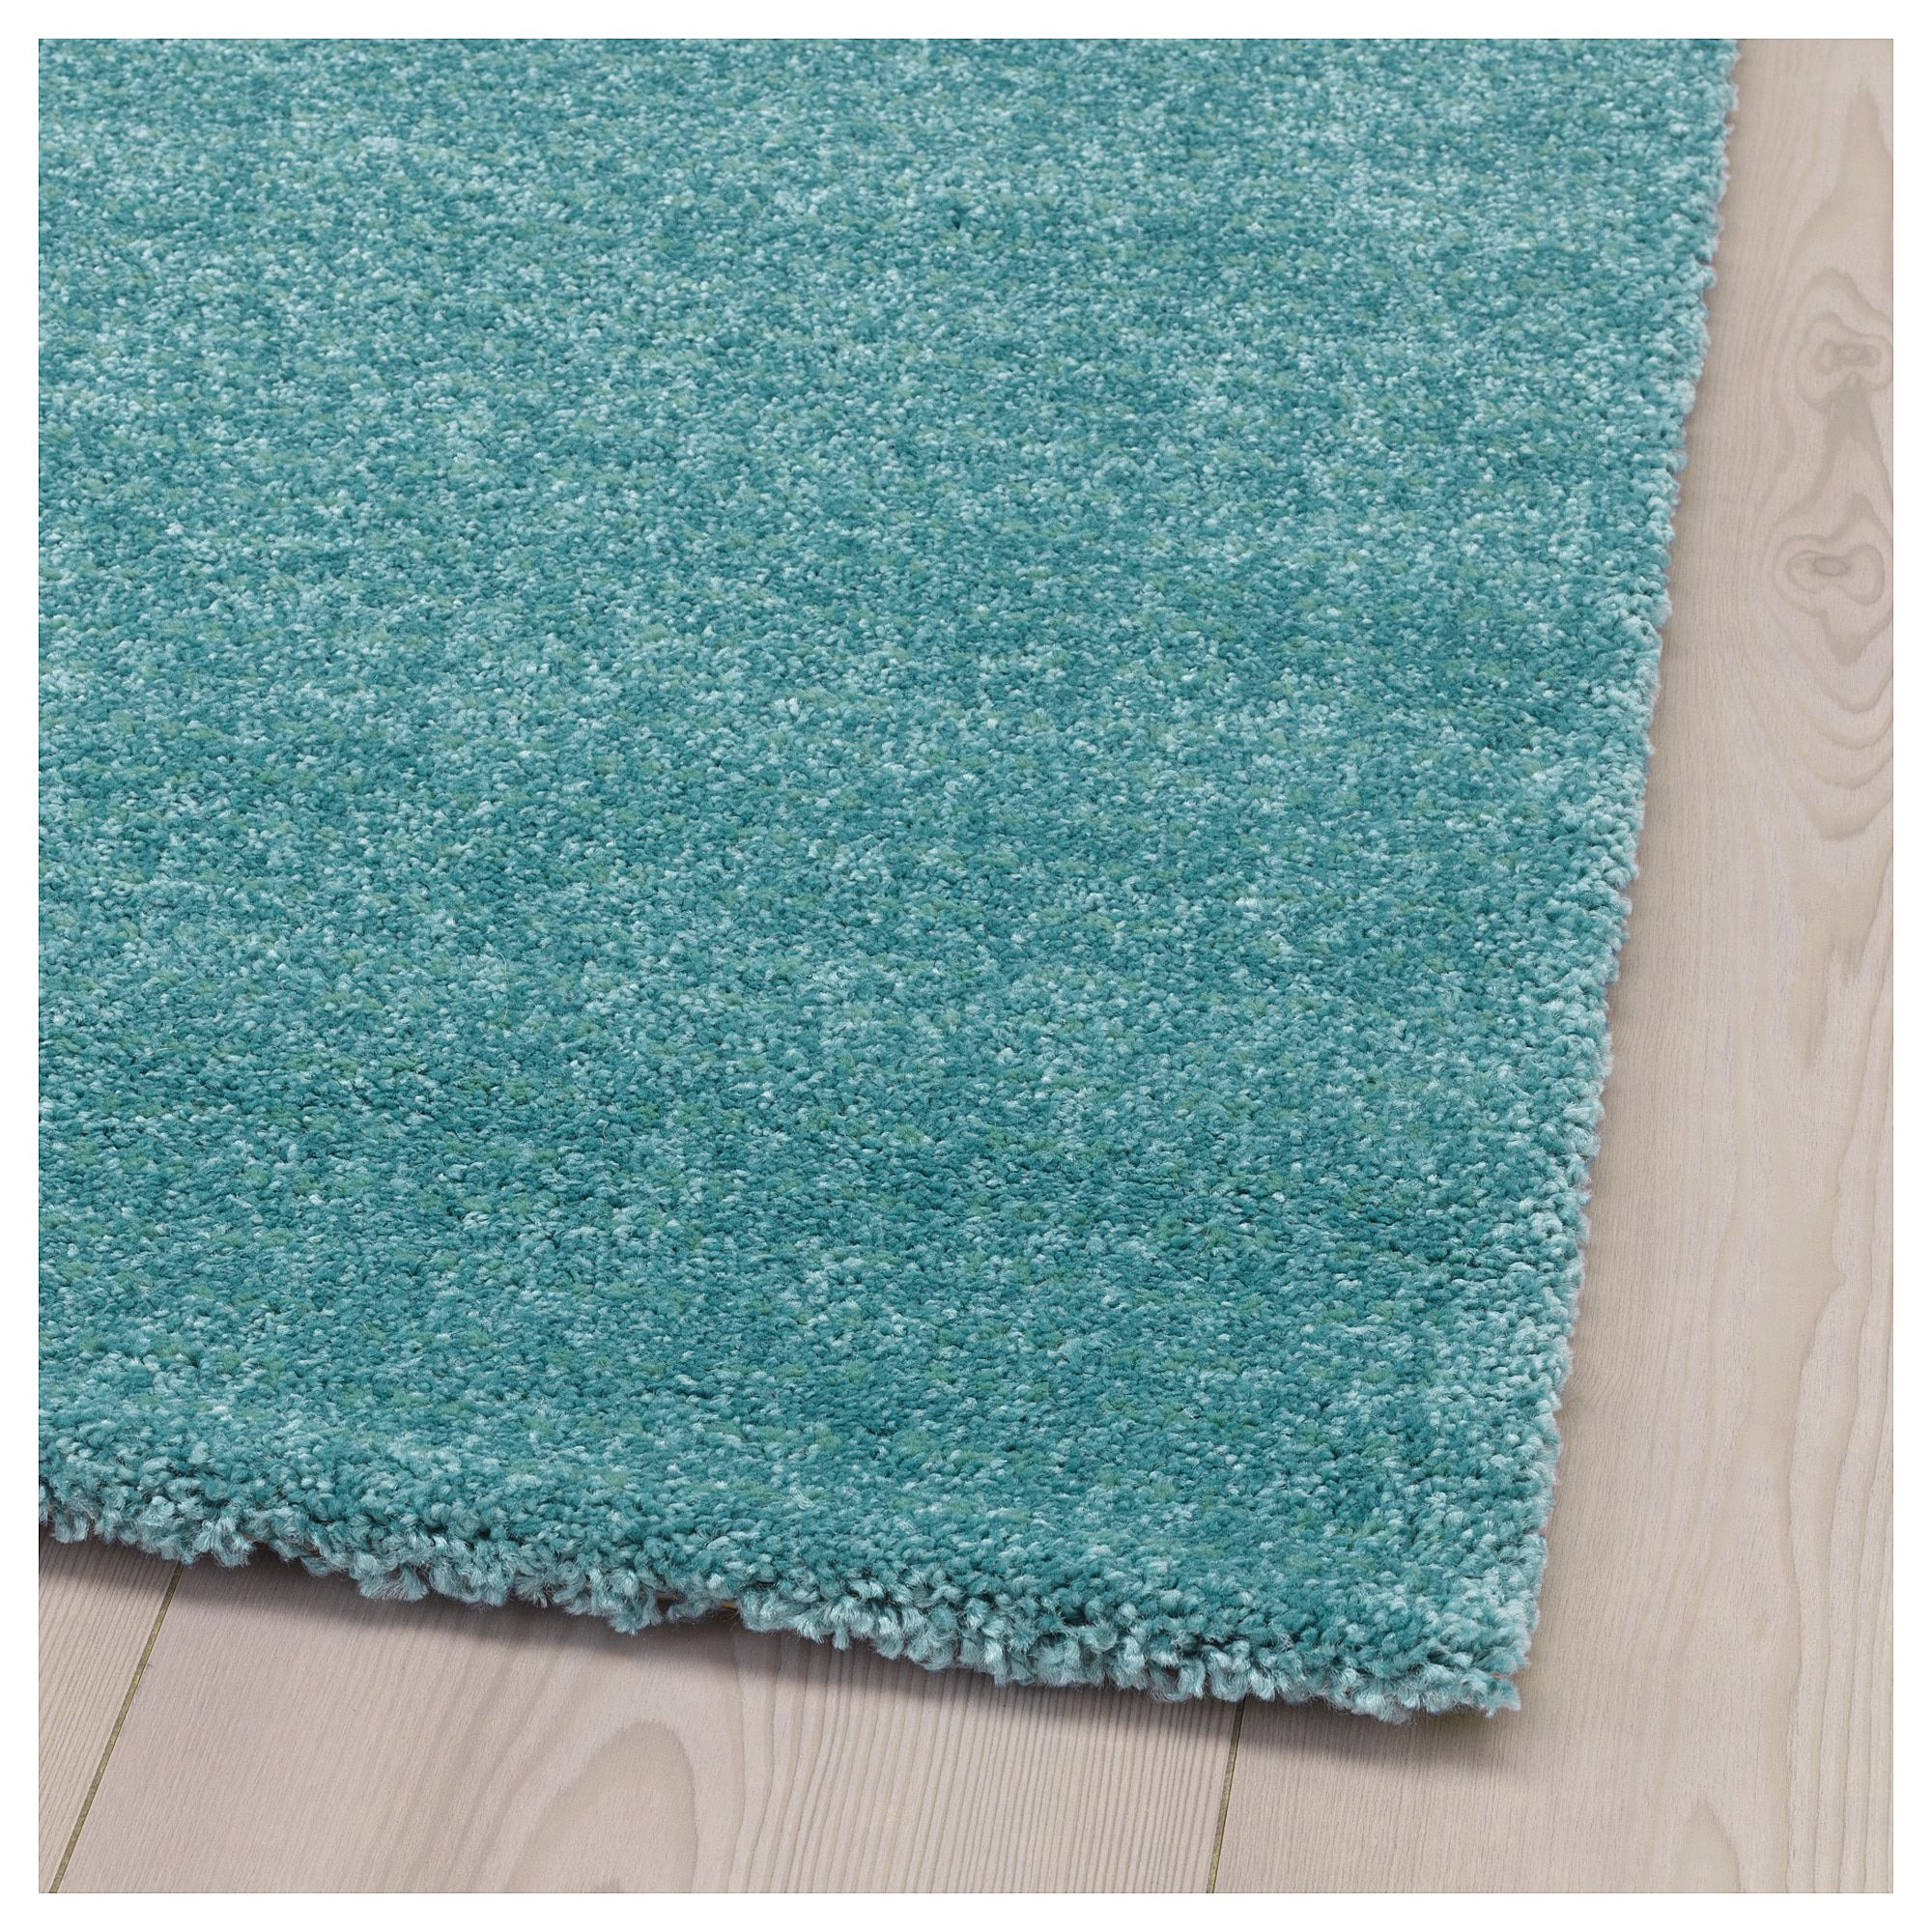 Vintage Teppich Türkis Ebay Ikea Langsted Rug Low Pile Turquoise Wohnung Sophie Und